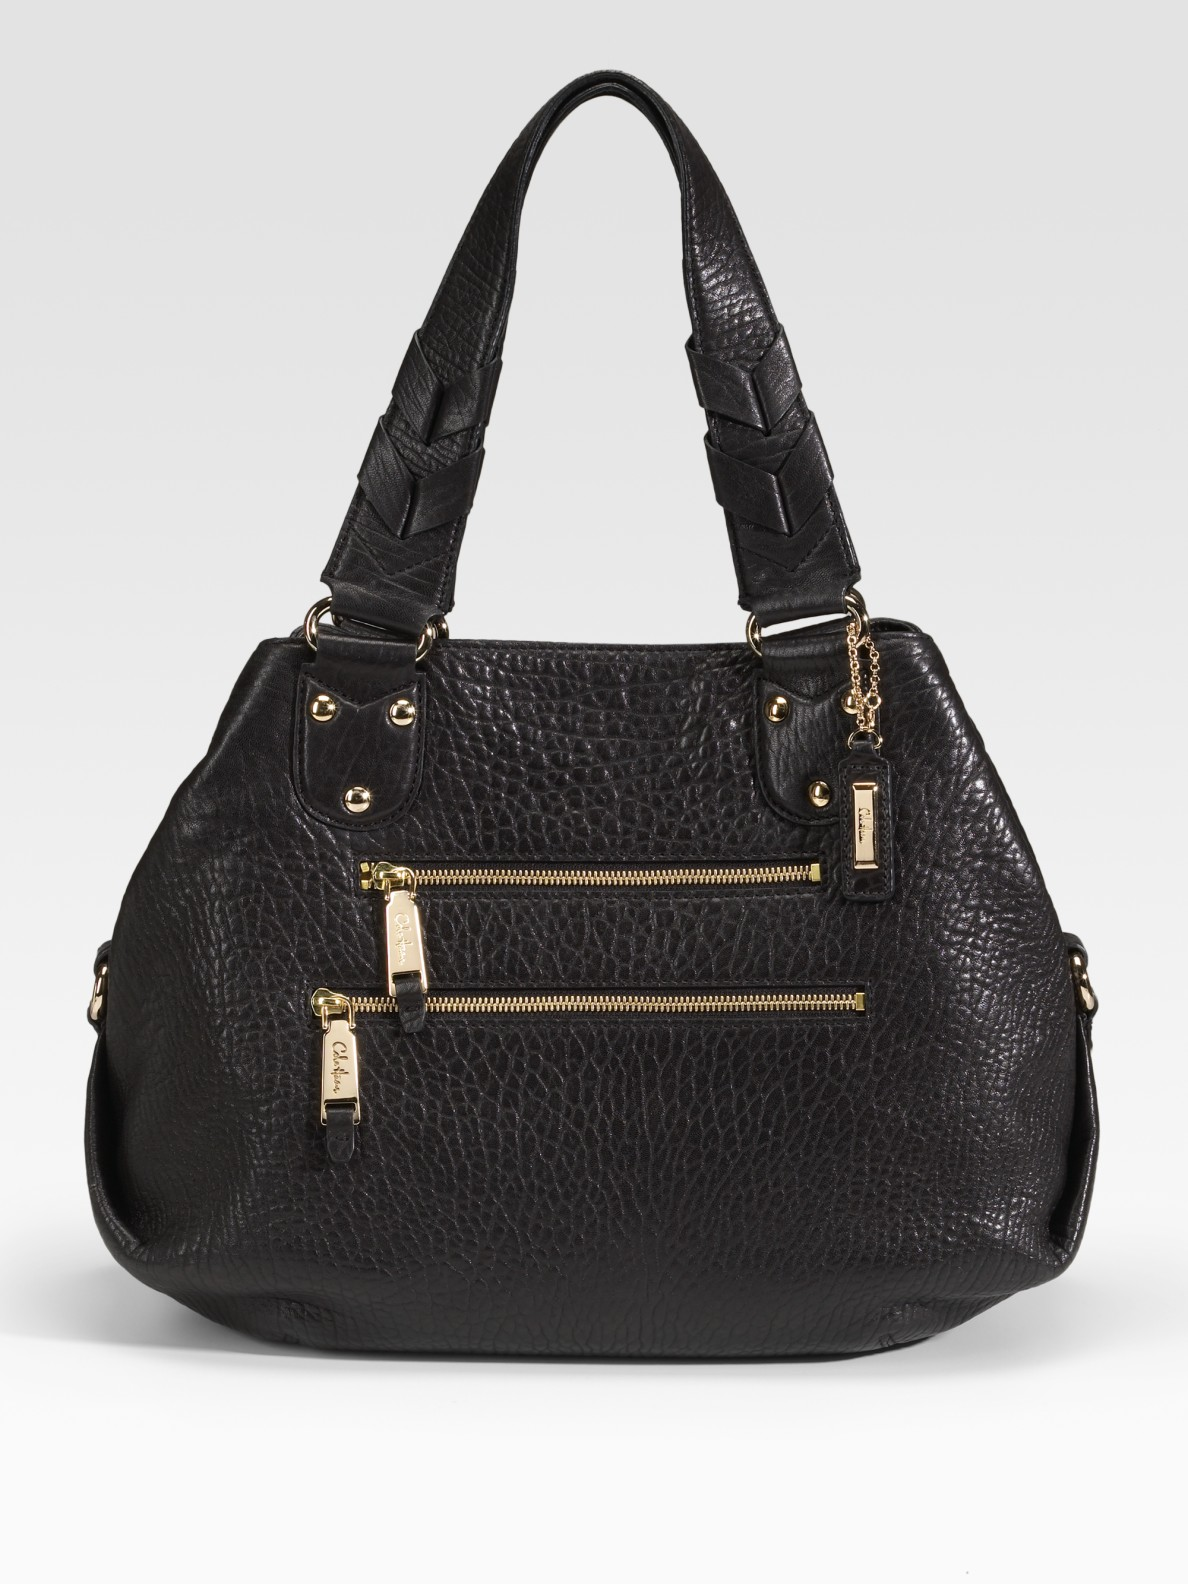 Shop for Tote Bags from Kate Spade, BRAHMIN, MICHAEL Michael Kors, COACH, & More. Visit Dillard's for all your handbags needs.